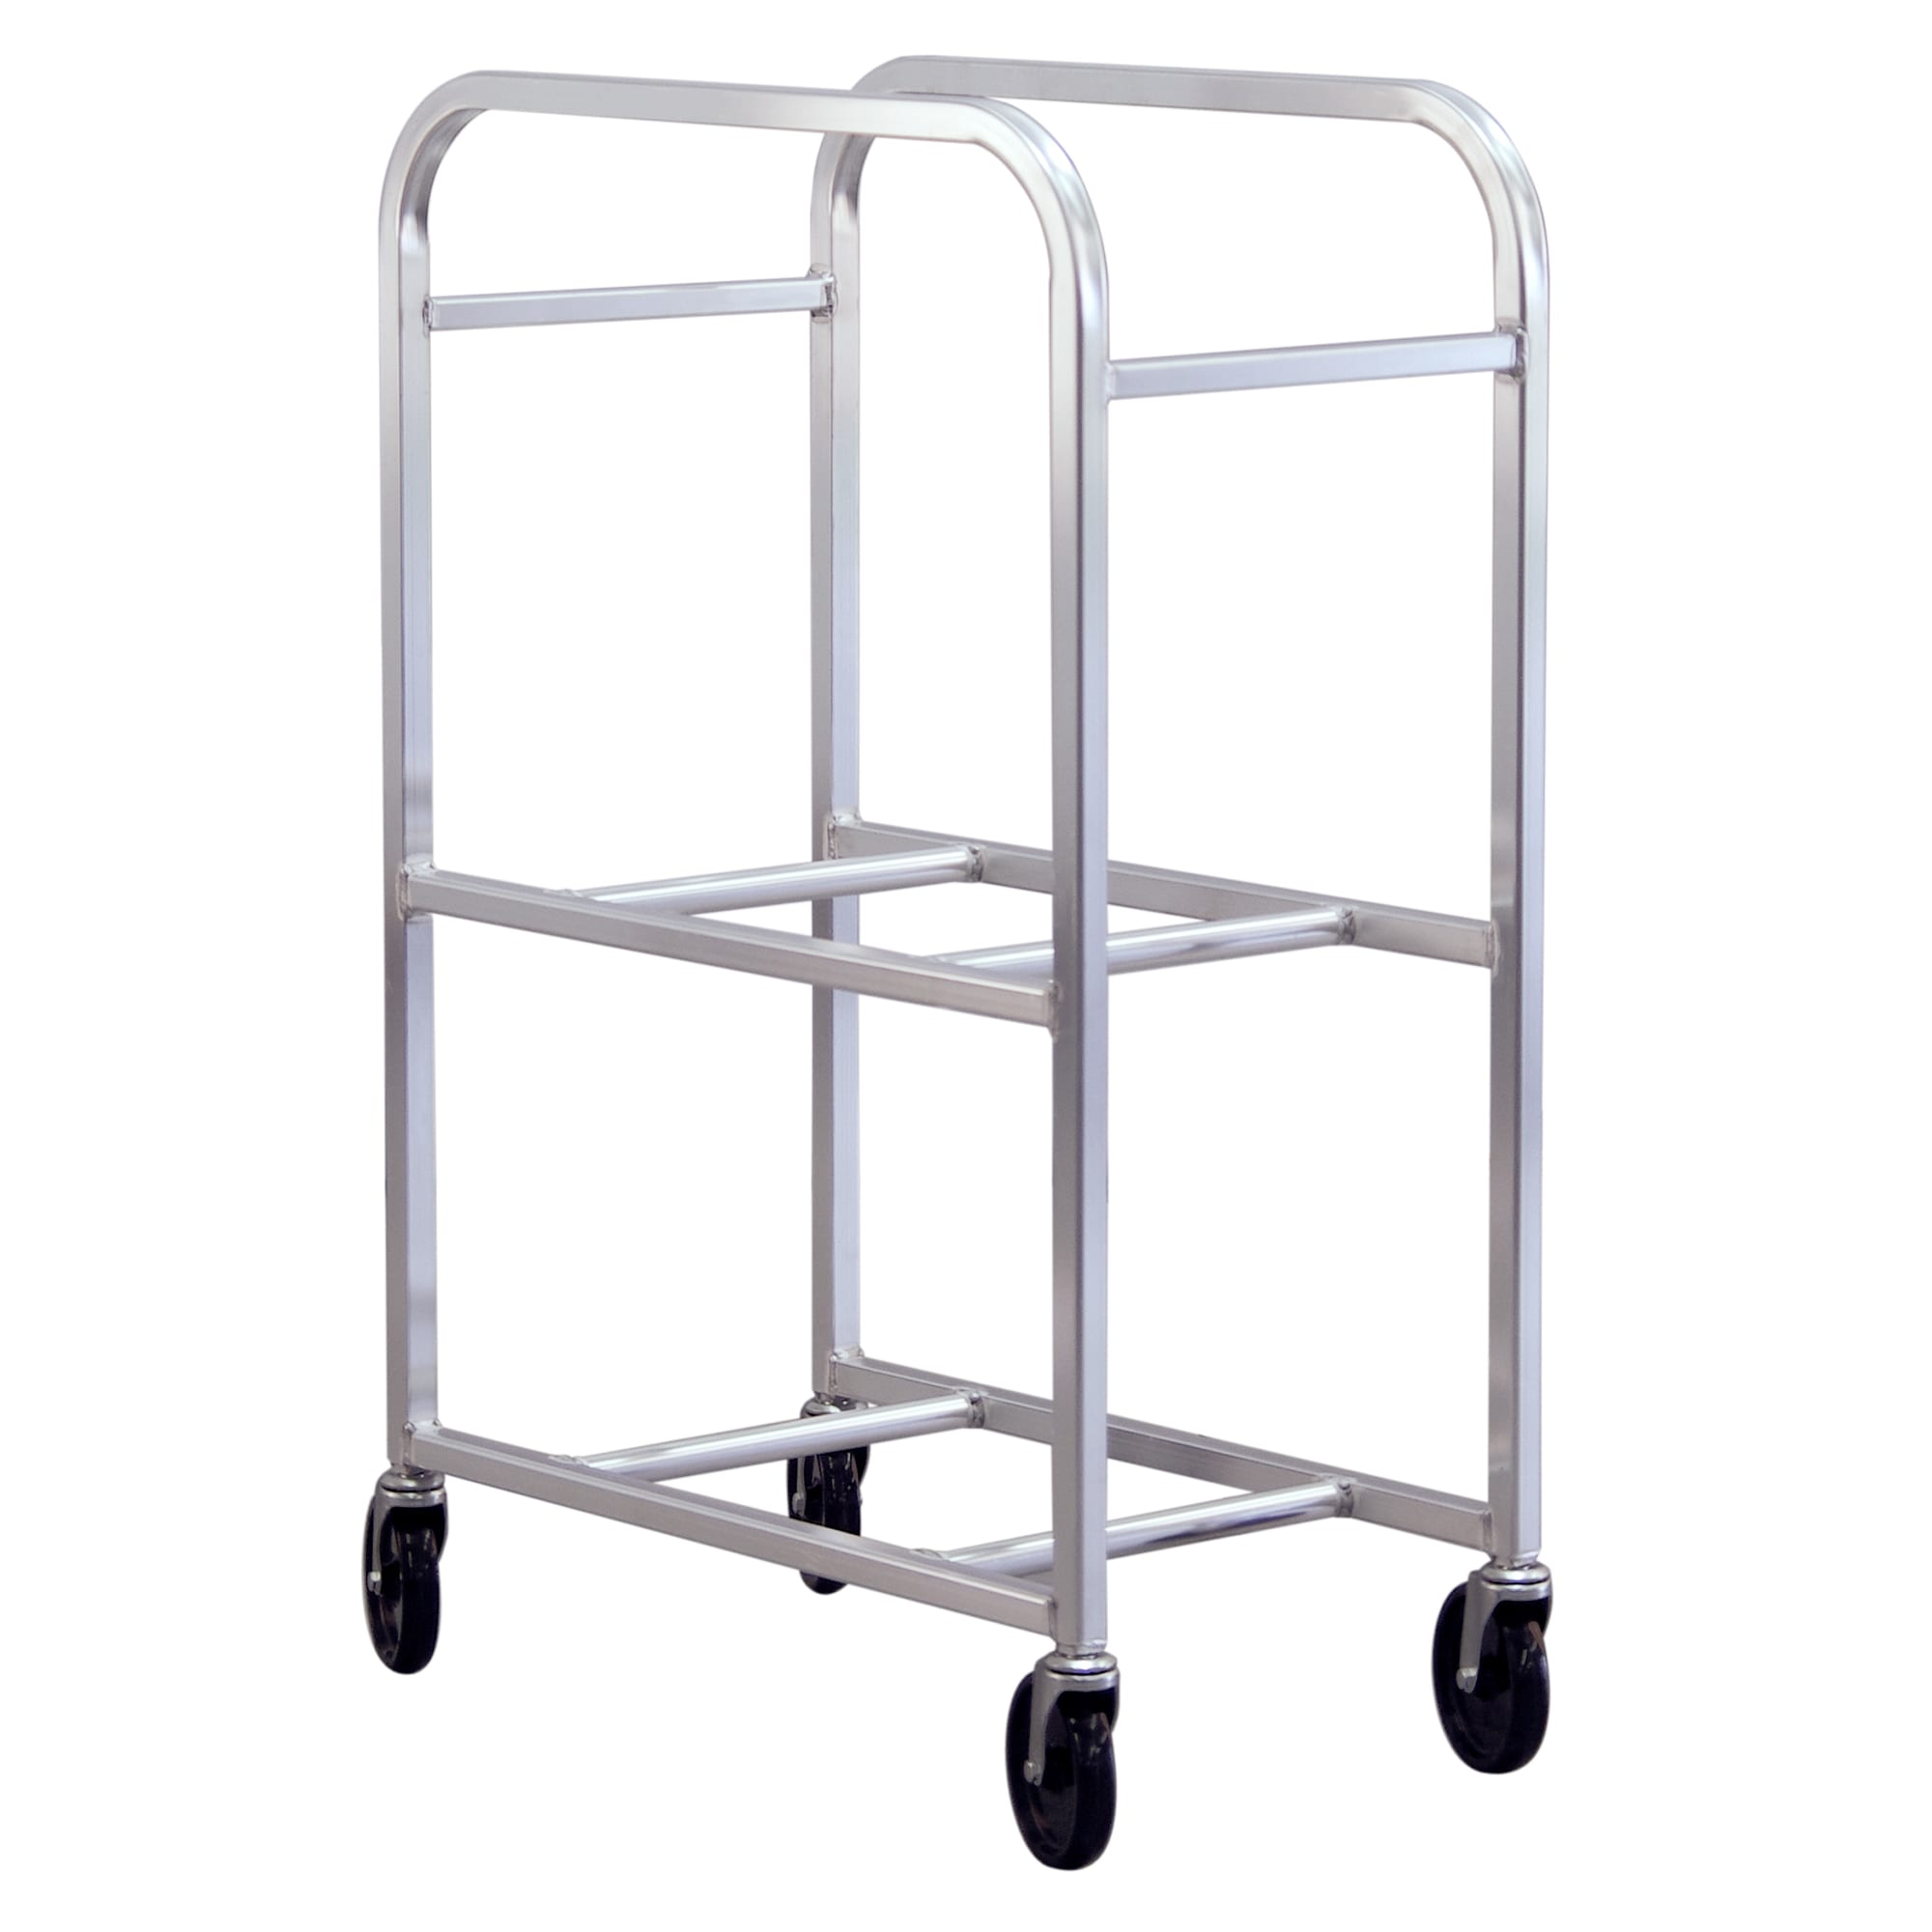 New Age 99304 Dolly for Lug Storage w/ 500 lb Capacity